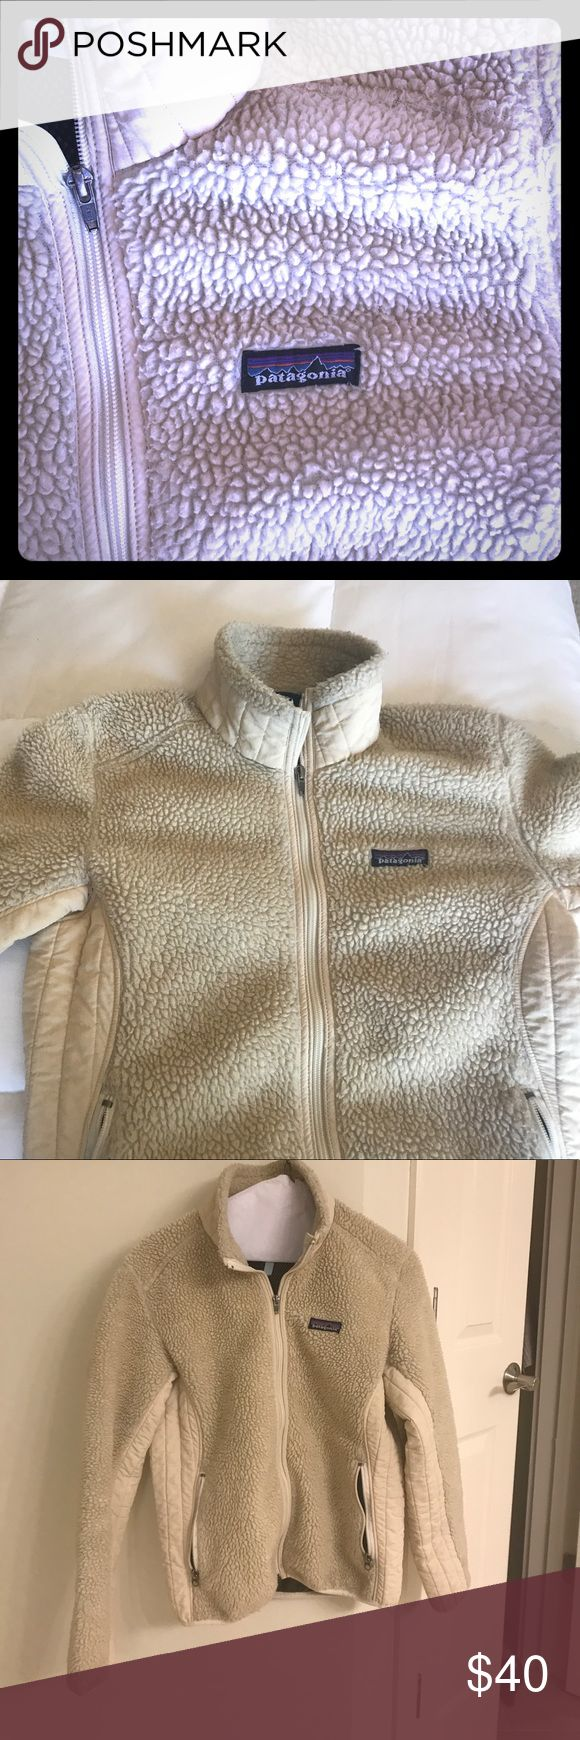 Patagonia fleece jacket Lightweight retro fleece zip up Patagonia jacket- cream colored, size tag missing but fits like a small. Small hole in interior of one pocket (not visible, about the size of a quarter). GUC- perfect weight for Spring, Fall Patagonia Jackets & Coats